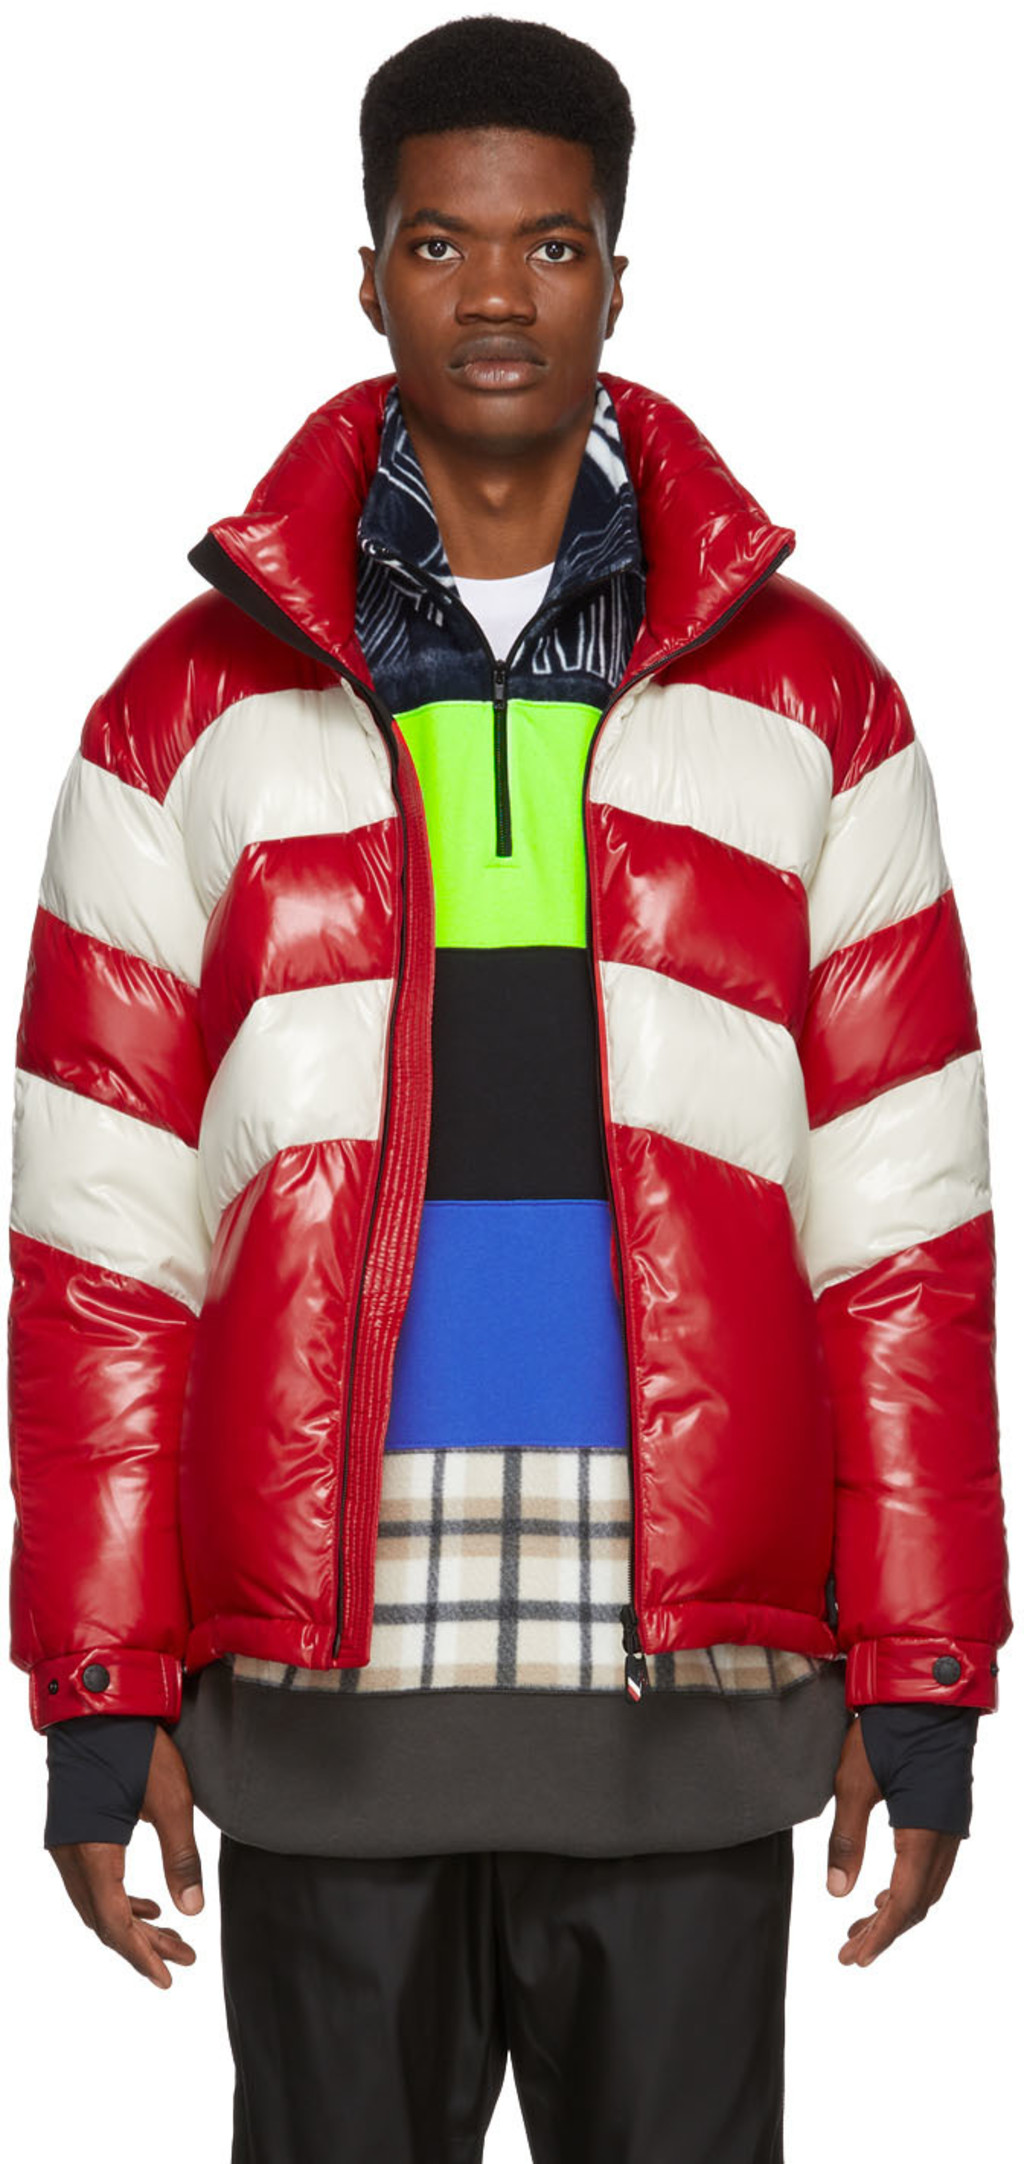 22f5b405600c Collection Collection Collection Grenoble Grenoble Grenoble Grenoble France  Pour Ssense Moncler Hommes q5Xdq